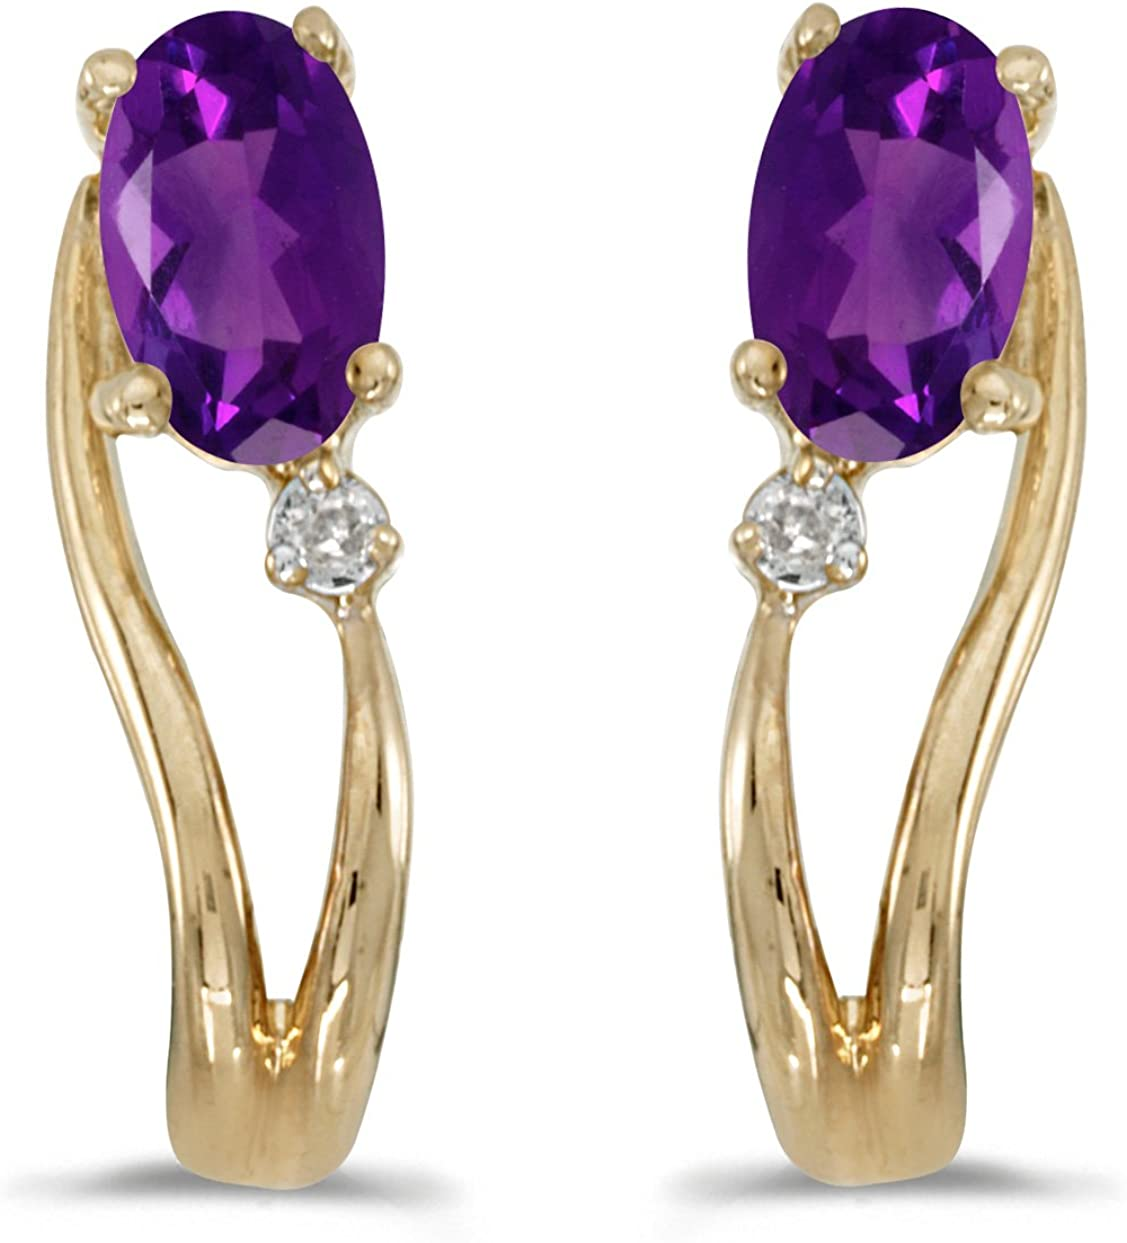 Jewels By Lux 14k Yellow Gold Studs Genuine Purple Birthstone Oval Amethyst And Diamond Wave Earrings 0.36 Cttw.